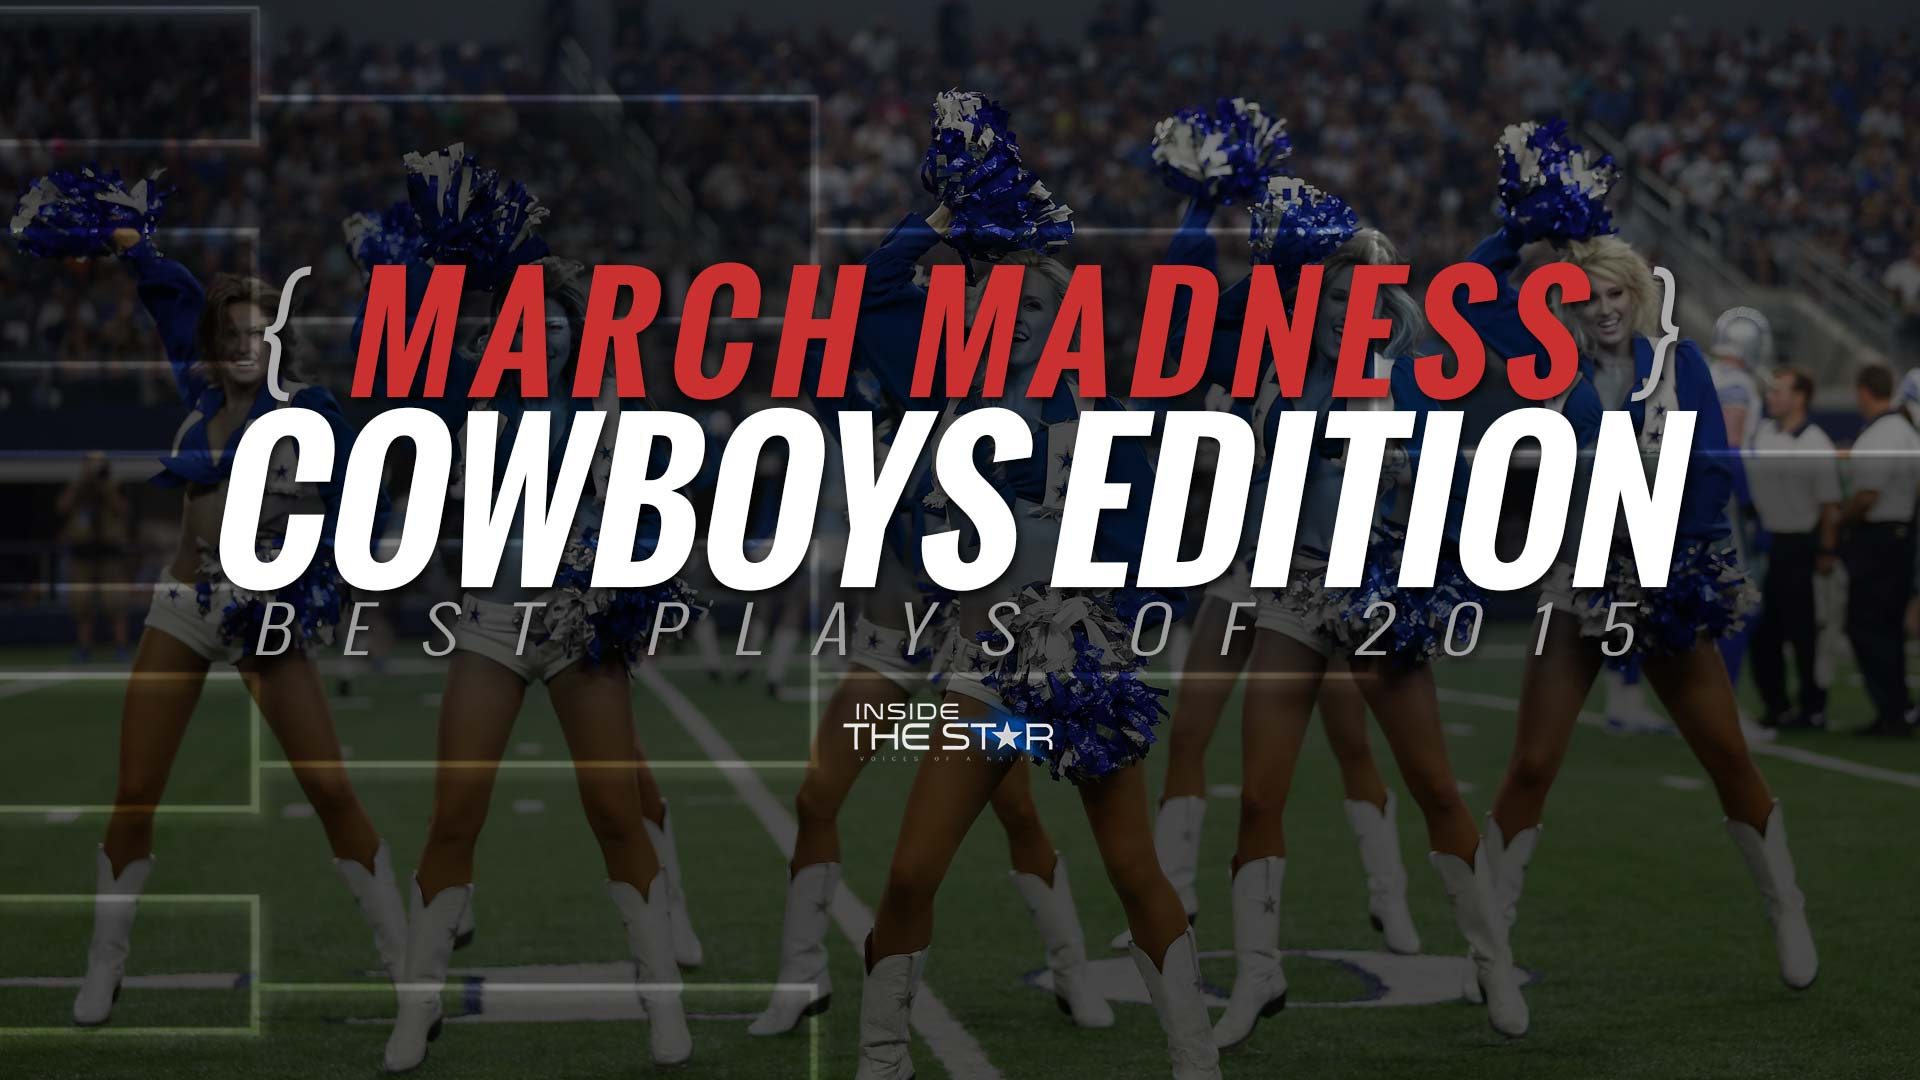 The Star News - March Madness: Cowboys Edition, Final Four